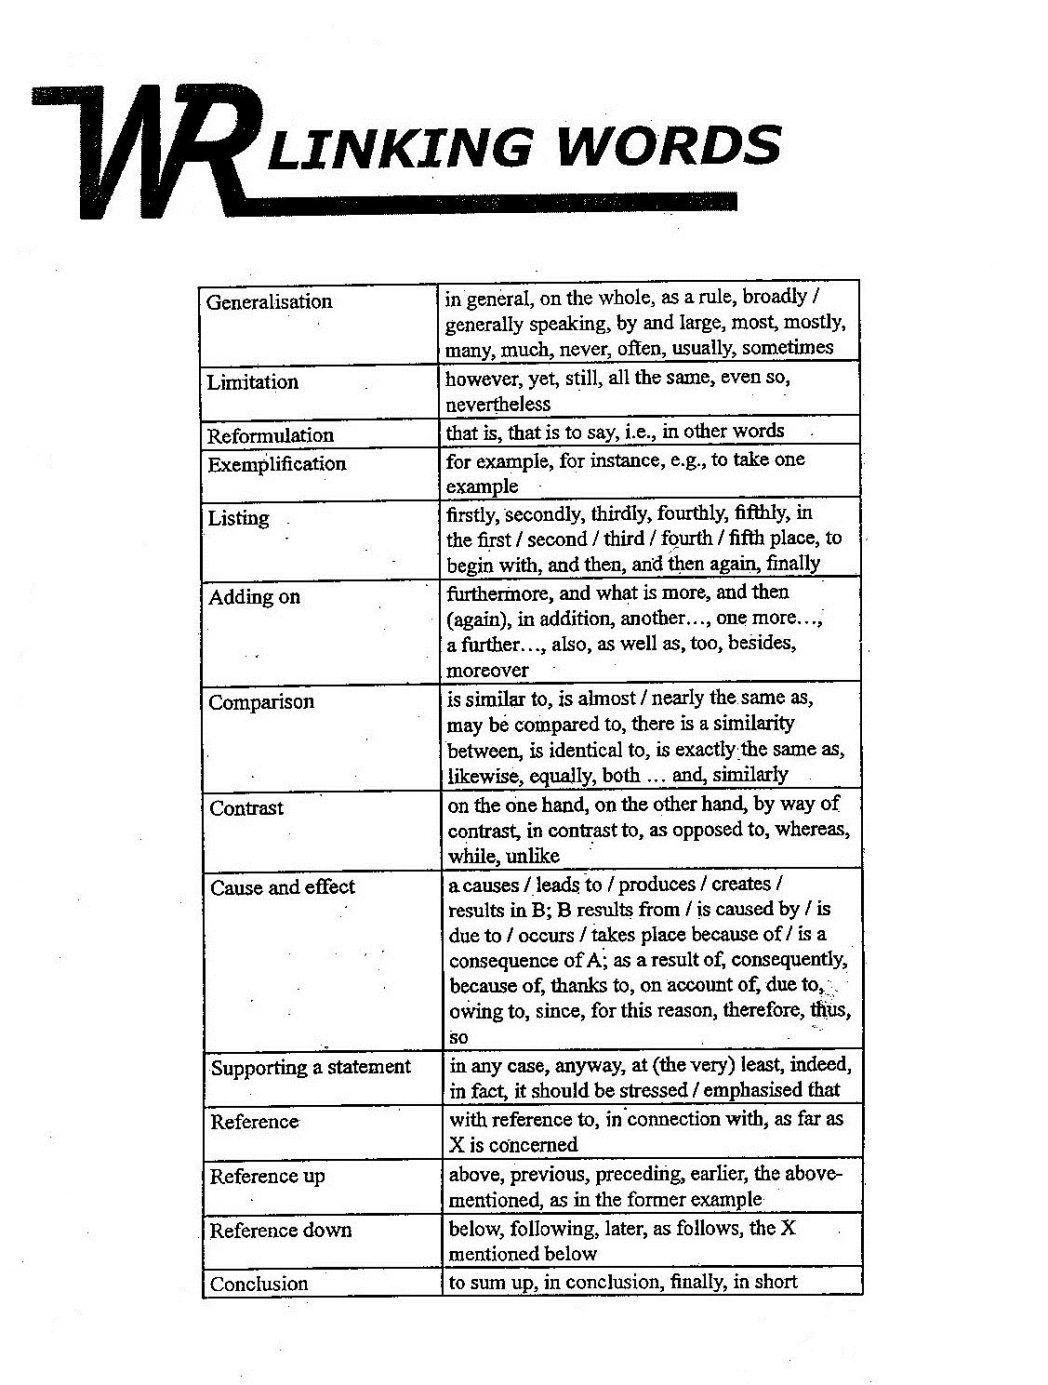 010 Word Essay Introduction Words For Essays How To Write Formal Linking 1048x1385 Excellent 750 On Respect Double Spaced About Yourself Full